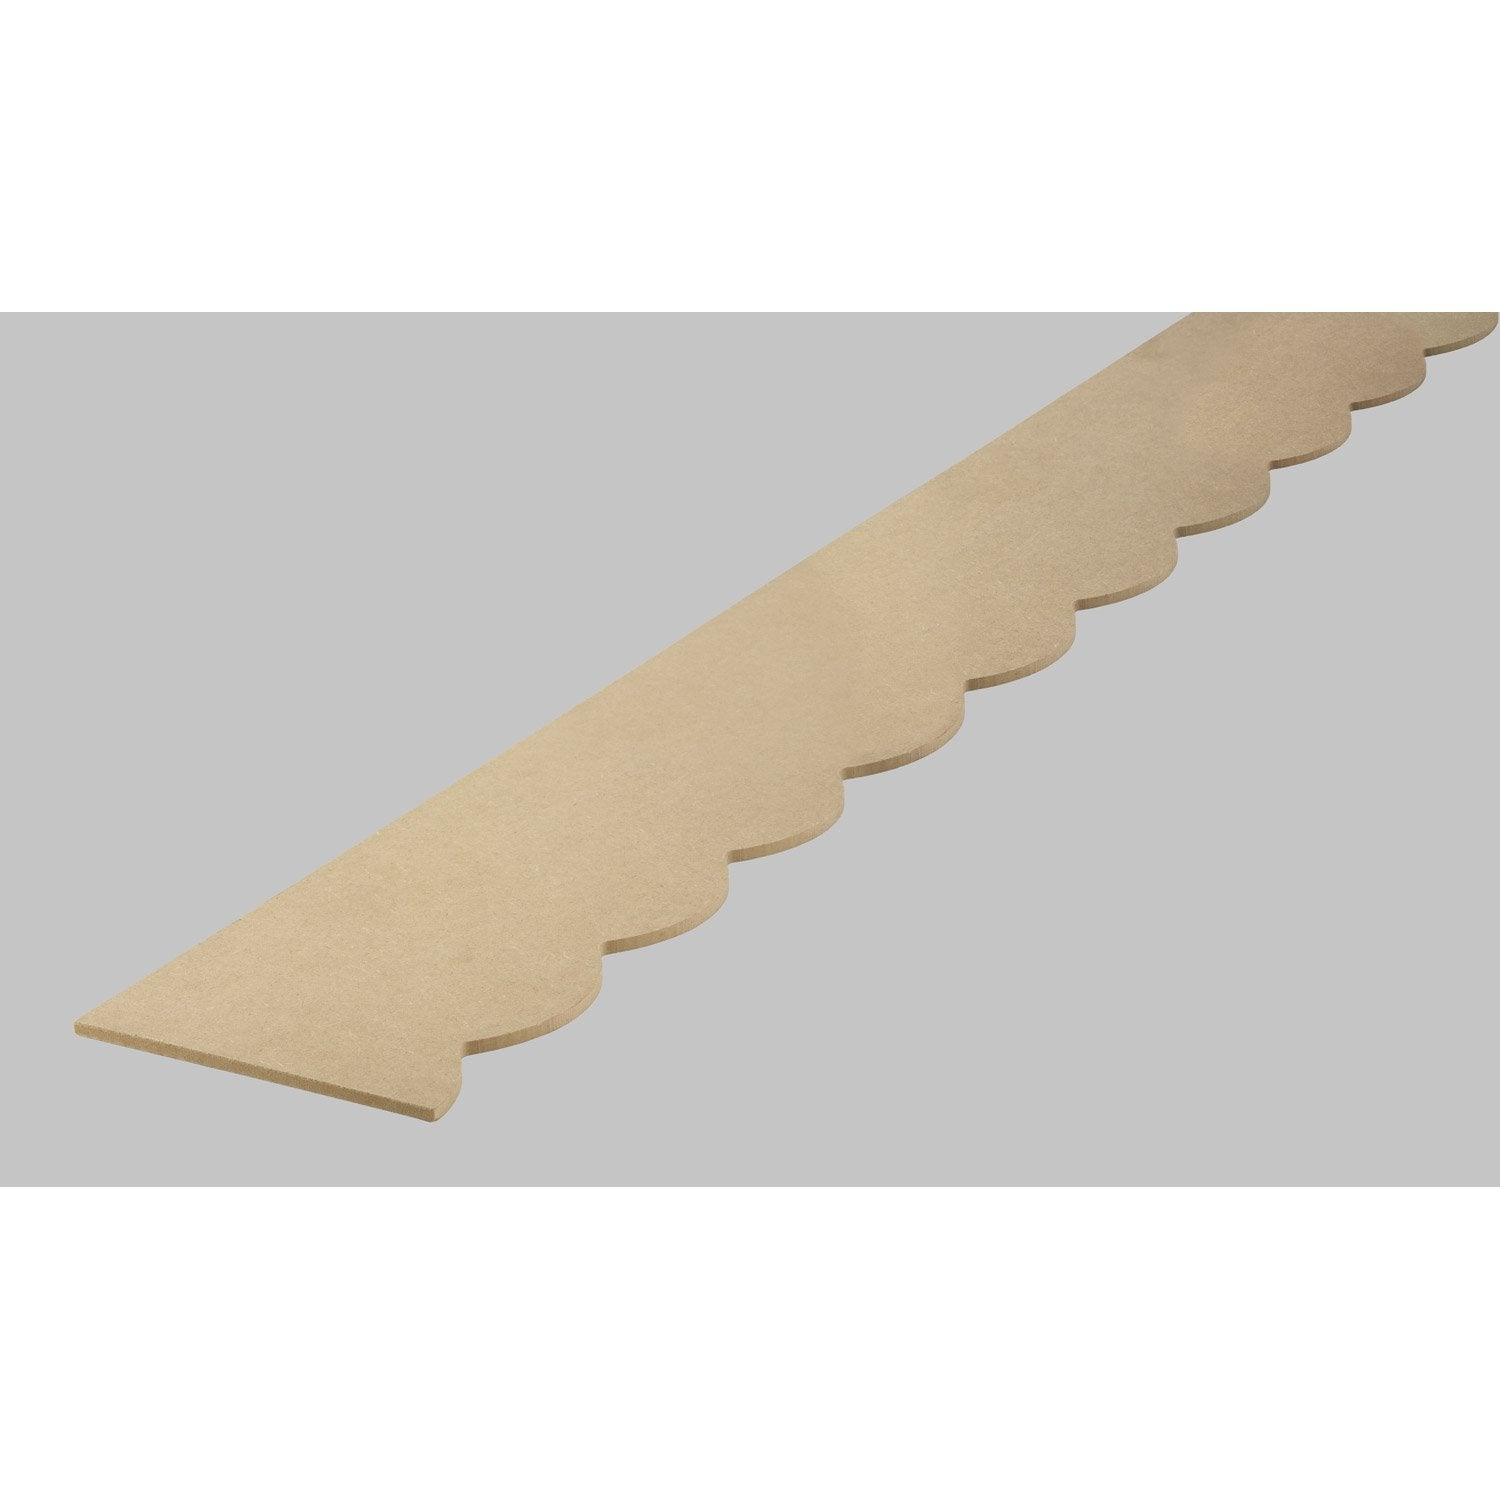 Frise savoie en mdf brut long 198cm section 18x6mm leroy merlin - Les decoratives leroy merlin ...